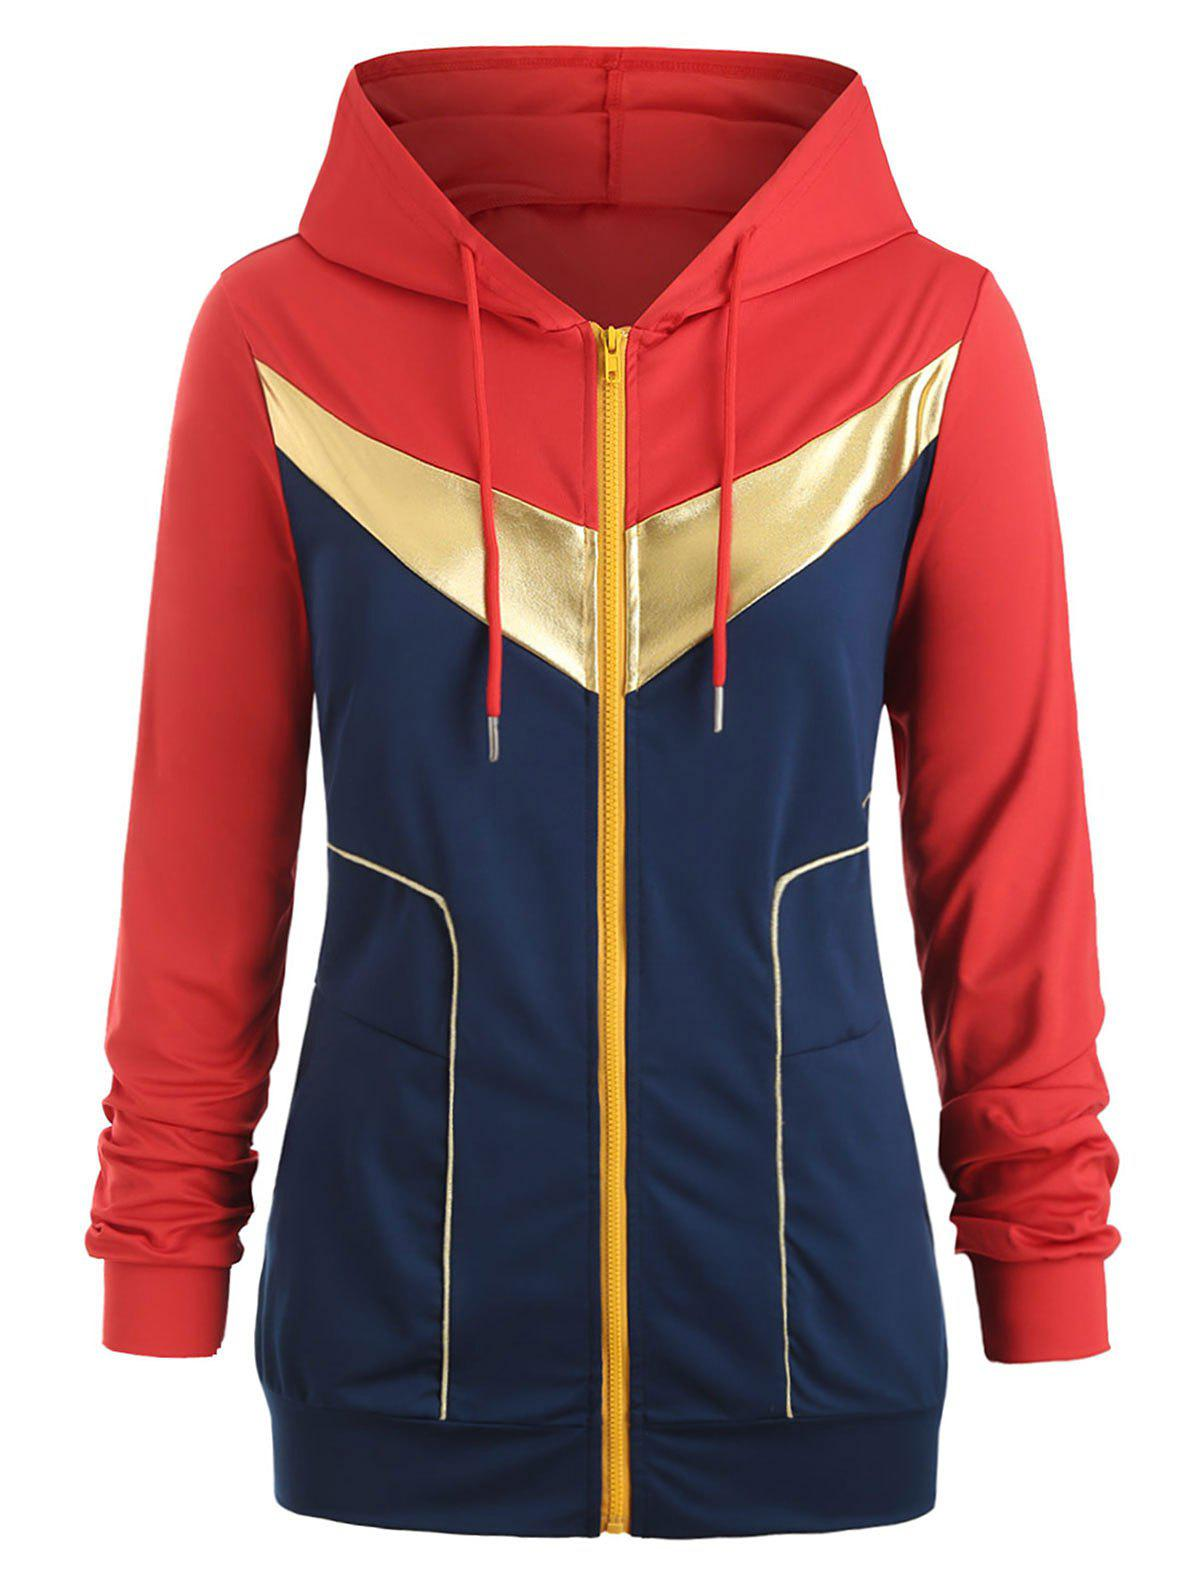 Gilding Piping Colorblock Zip Up Plus Size Hoodie - RED 3X